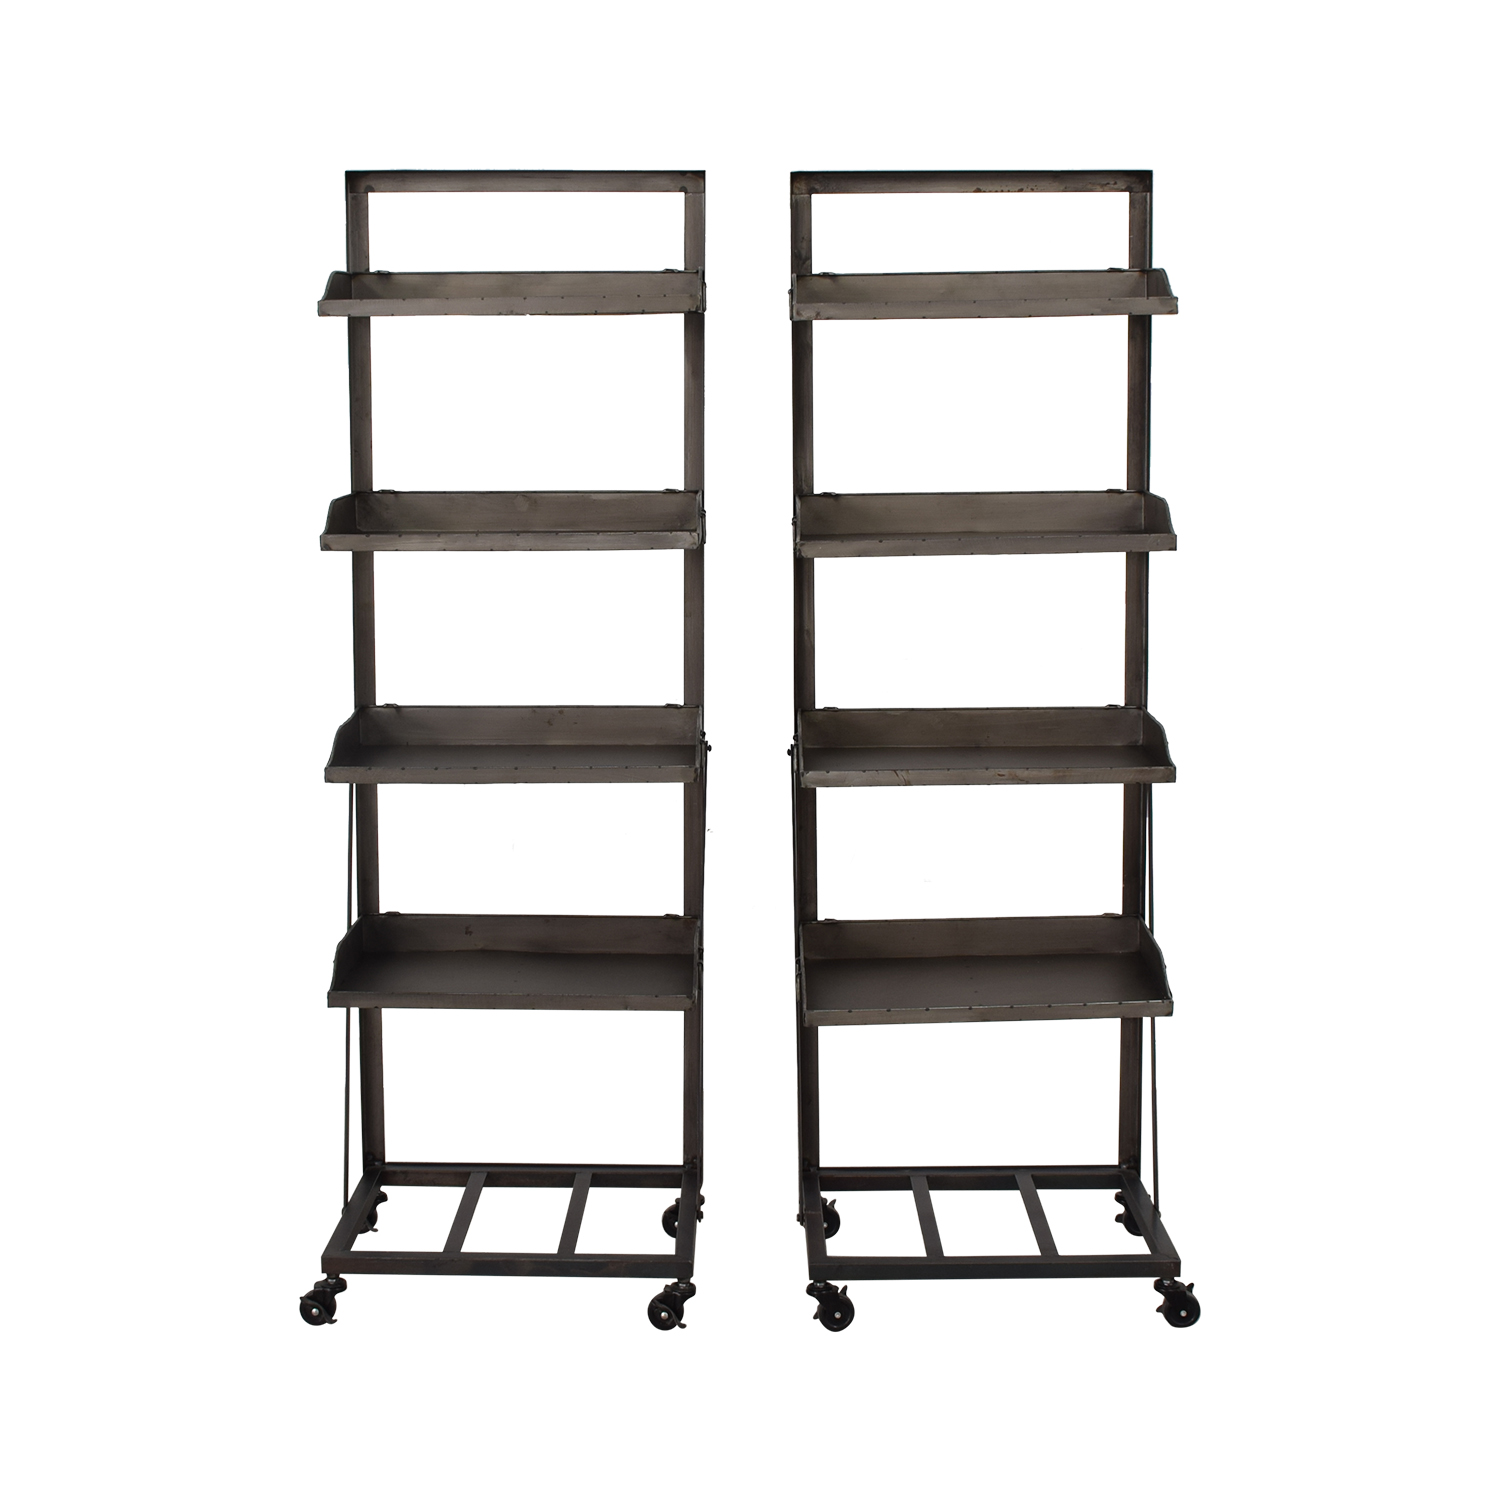 shop Bookshelves with Wheels  Storage